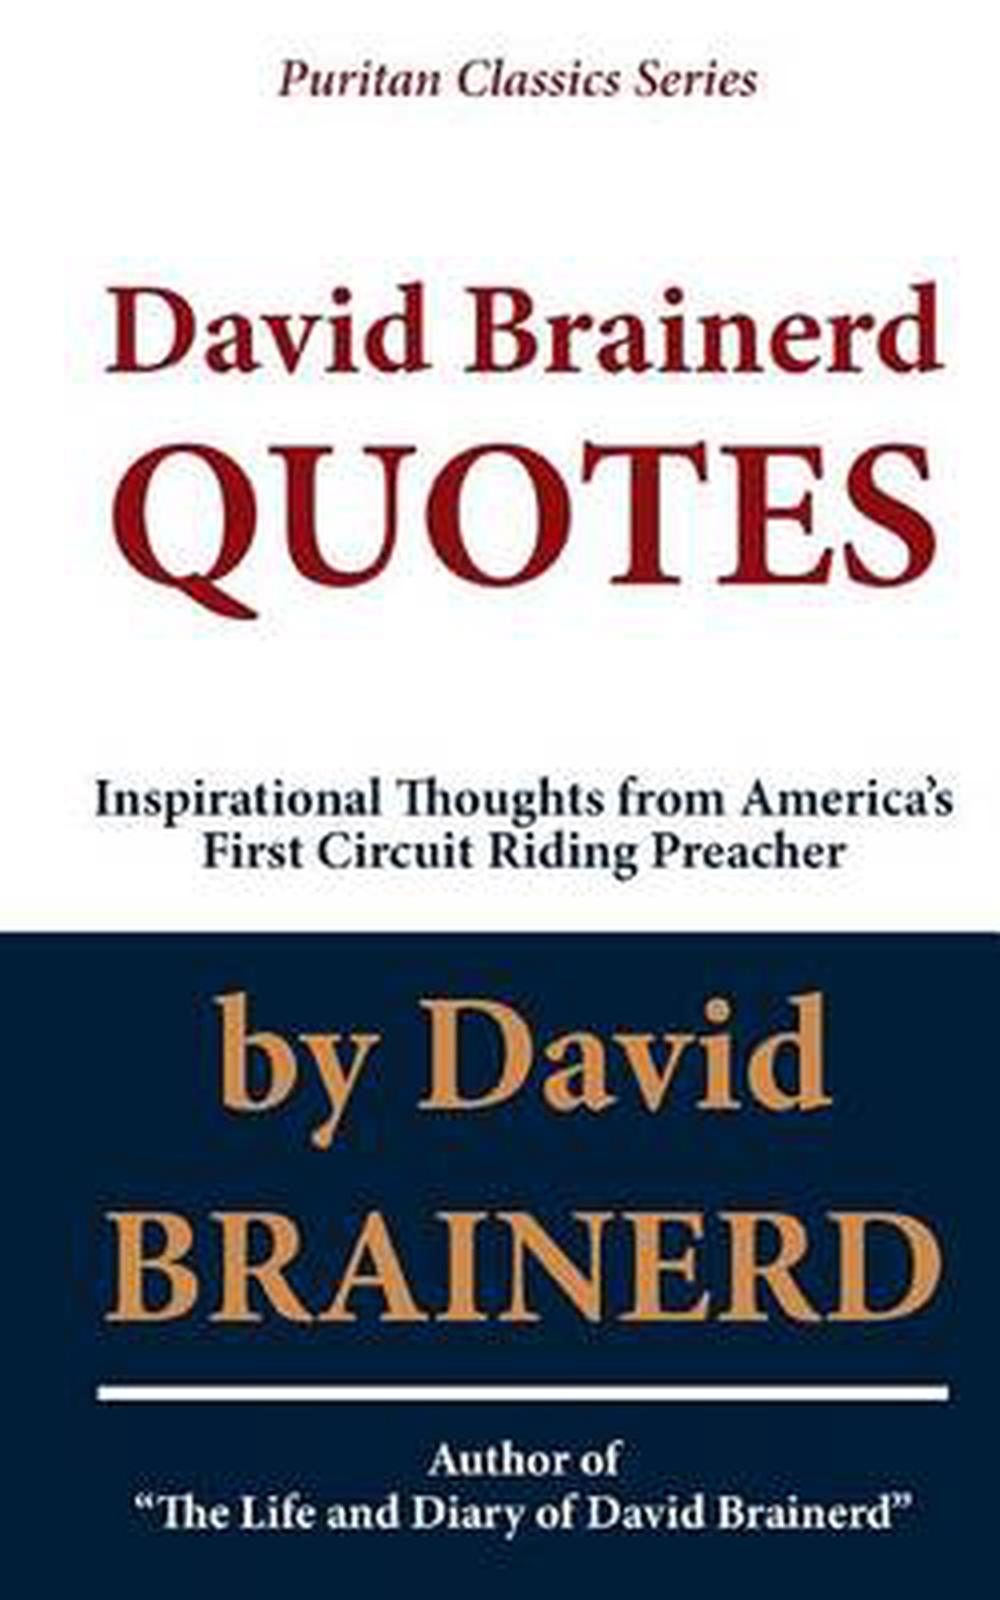 Inspirational Thoughts David Brainerd Quotes Inspirational Thoughts From America's First